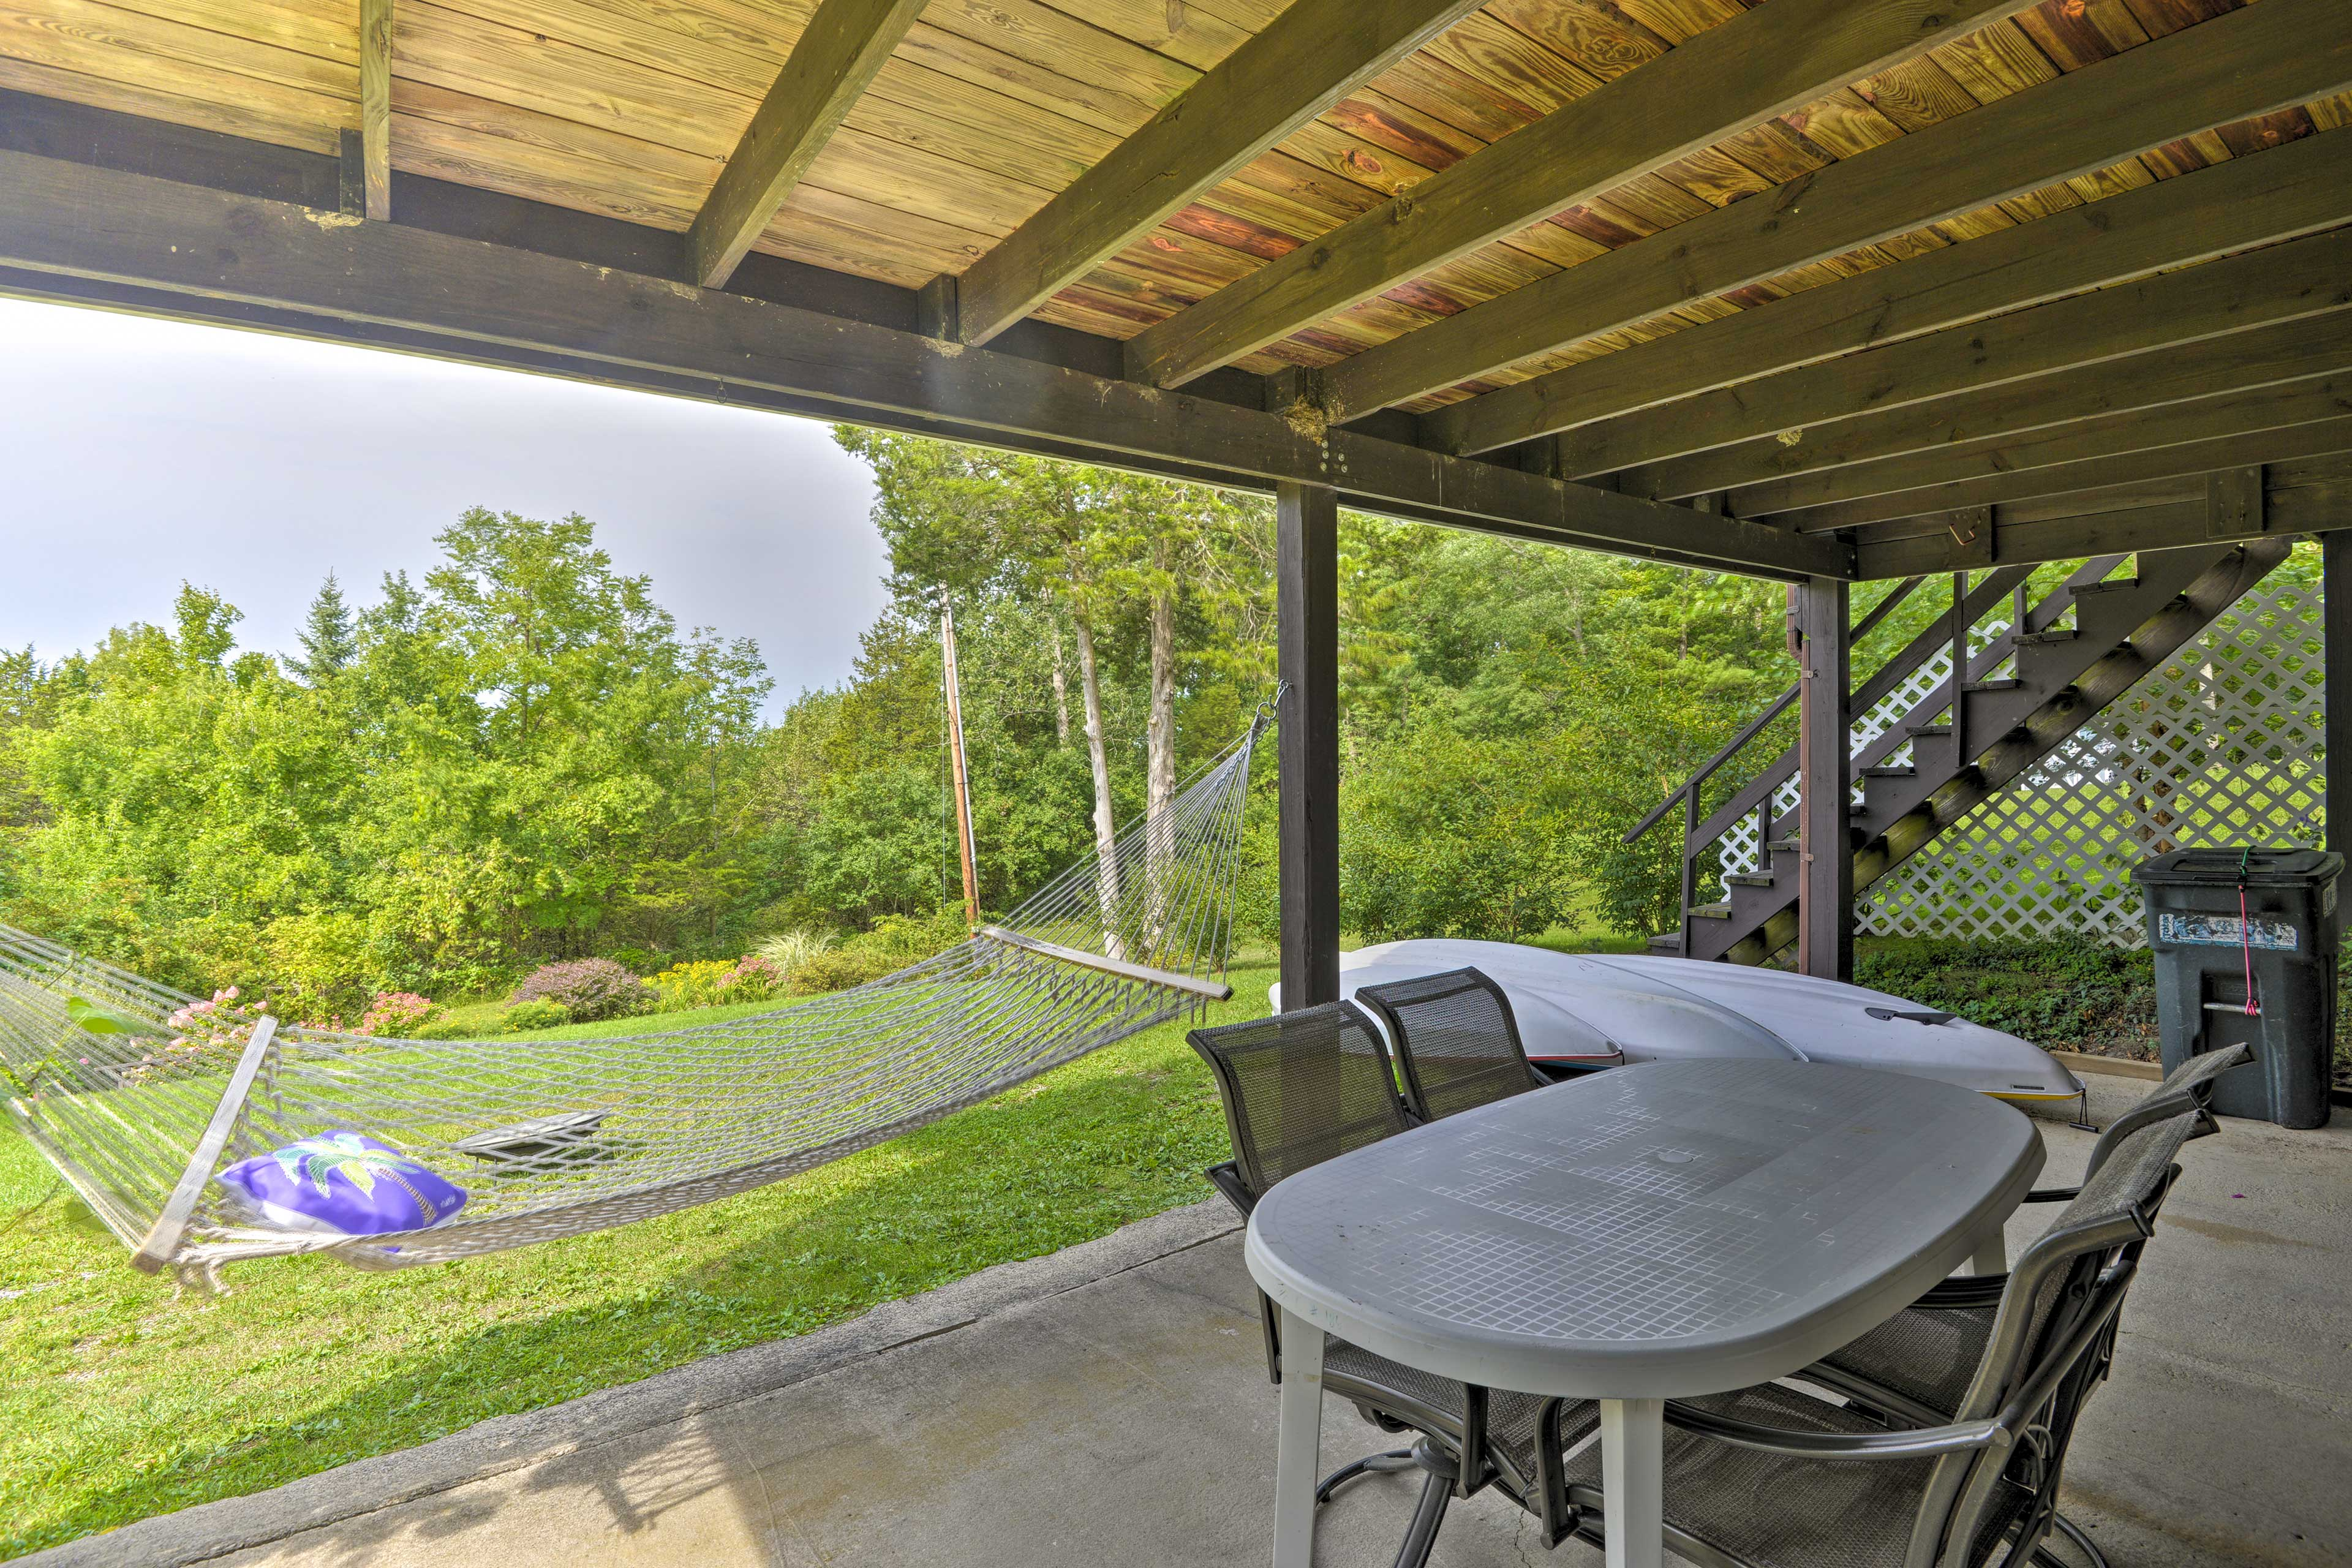 Explore the Finger Lakes region from this 3-bedroom, 2-bath home.